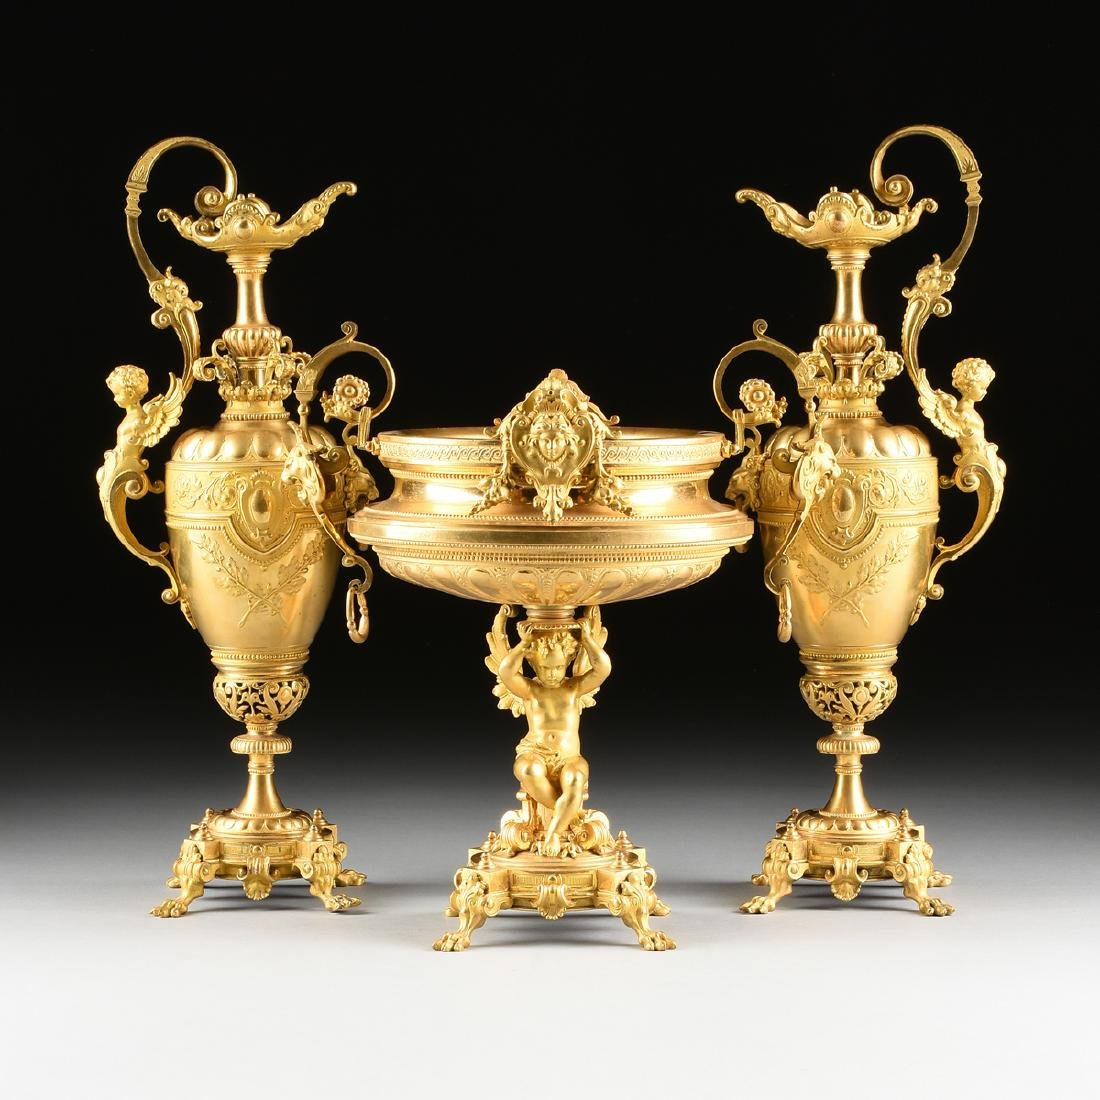 A THREE PIECE FRENCH NAPOLEON III STYLE TWO-TONE CAST